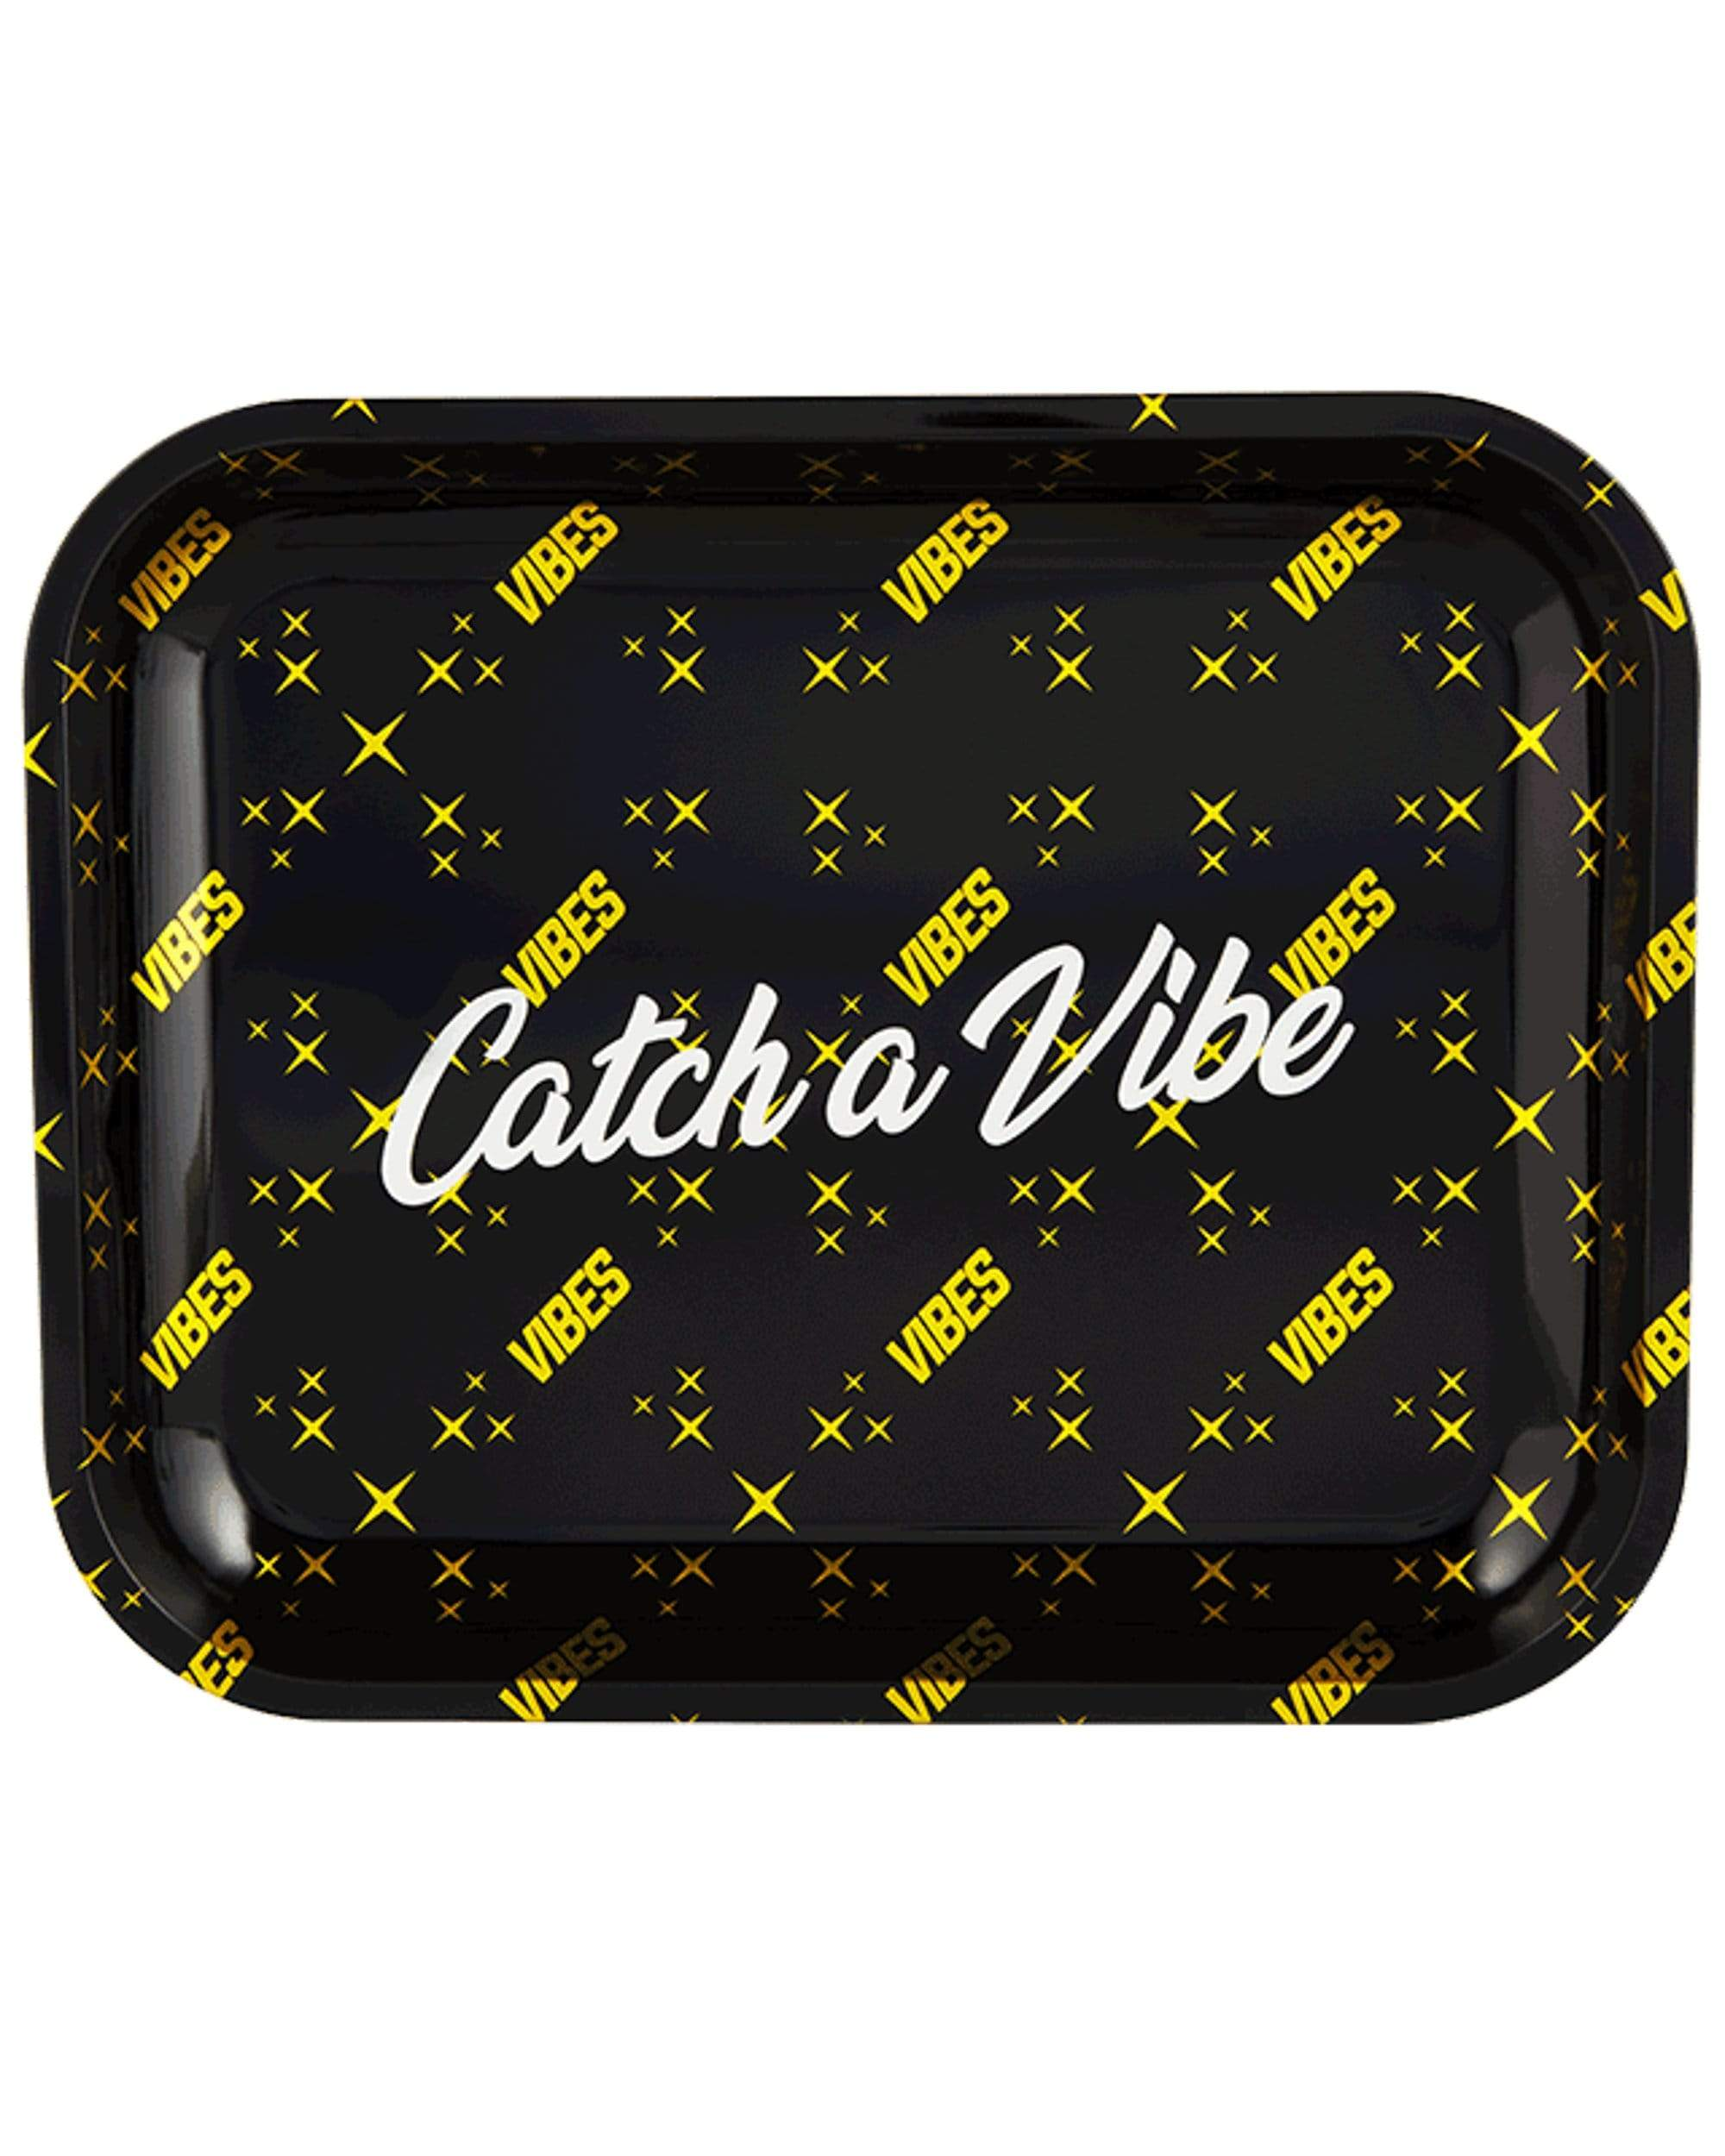 Catch A Vibe Rolling Tray